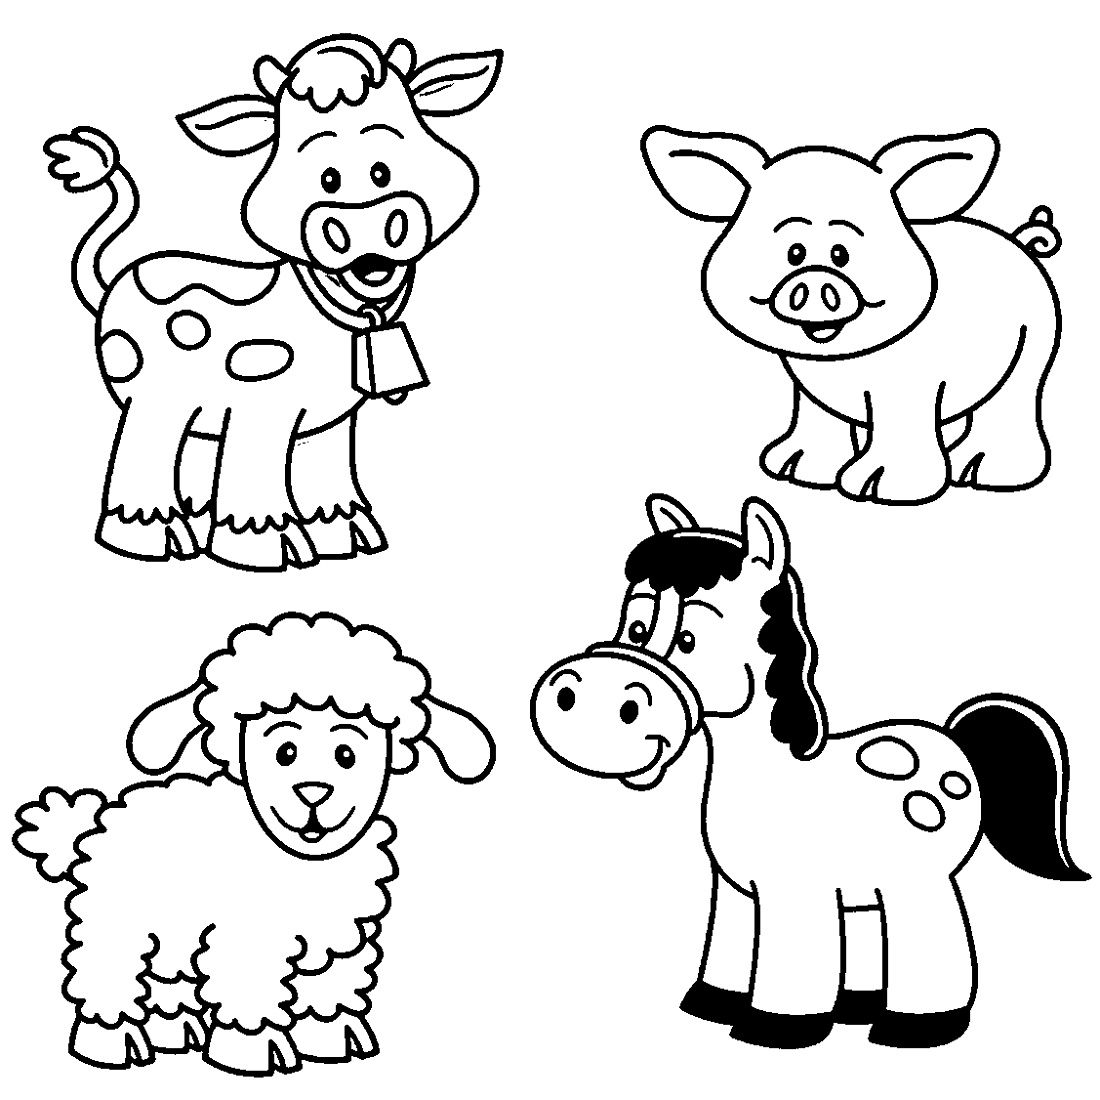 Printable Farm Animal Coloring for Kindergarten | K5 ... | coloring pages for farm animals